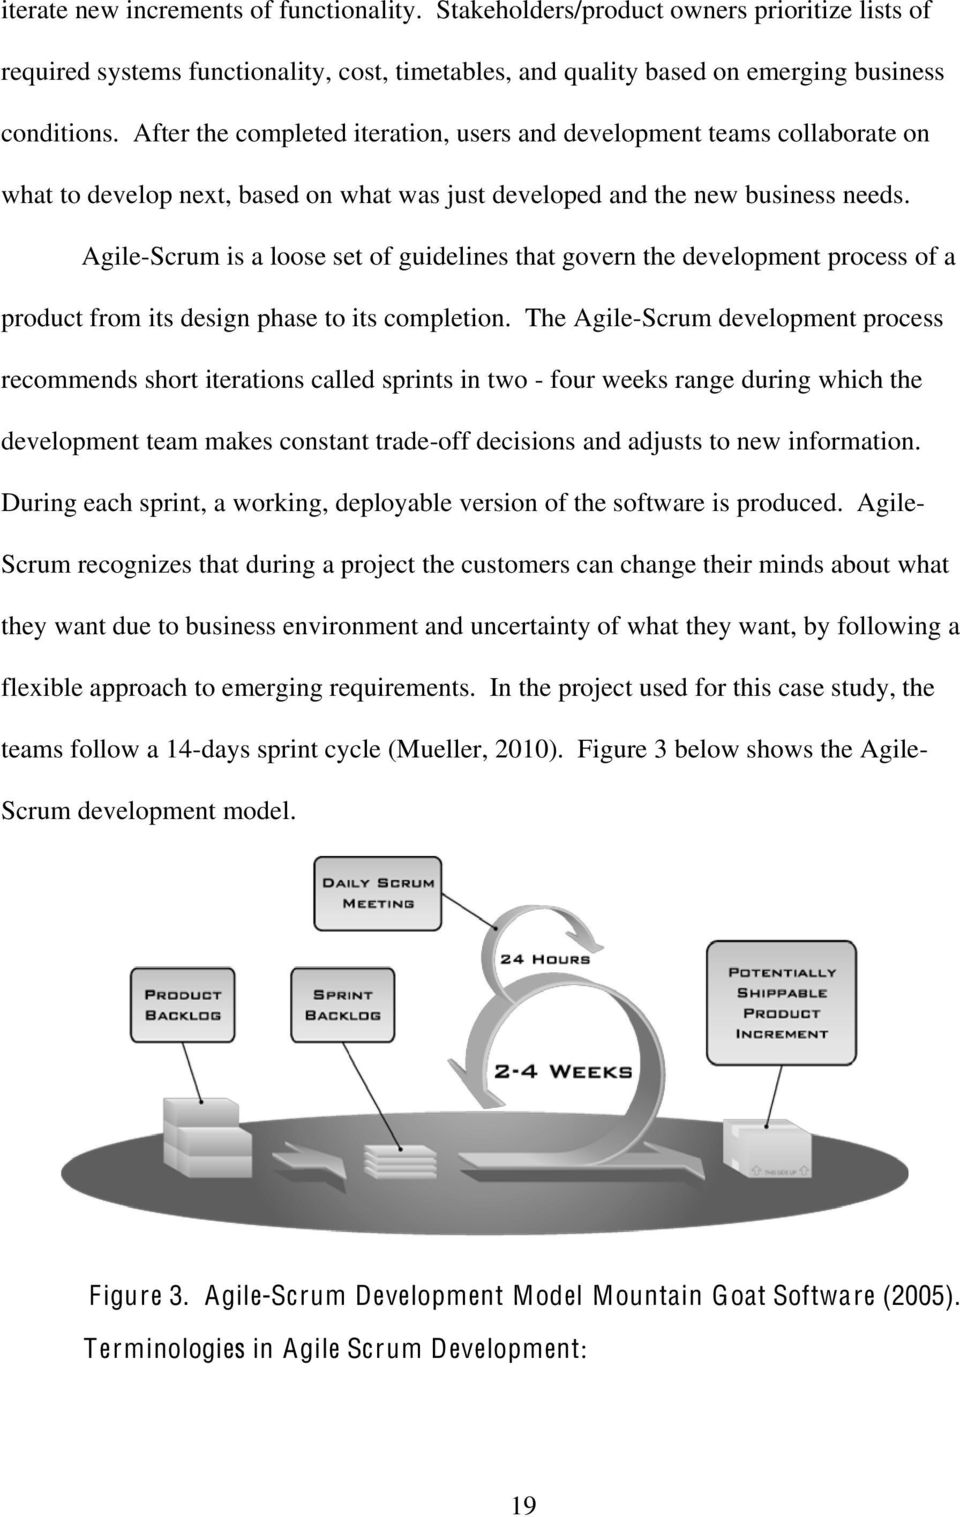 Agile-Scrum is a loose set of guidelines that govern the development process of a product from its design phase to its completion.